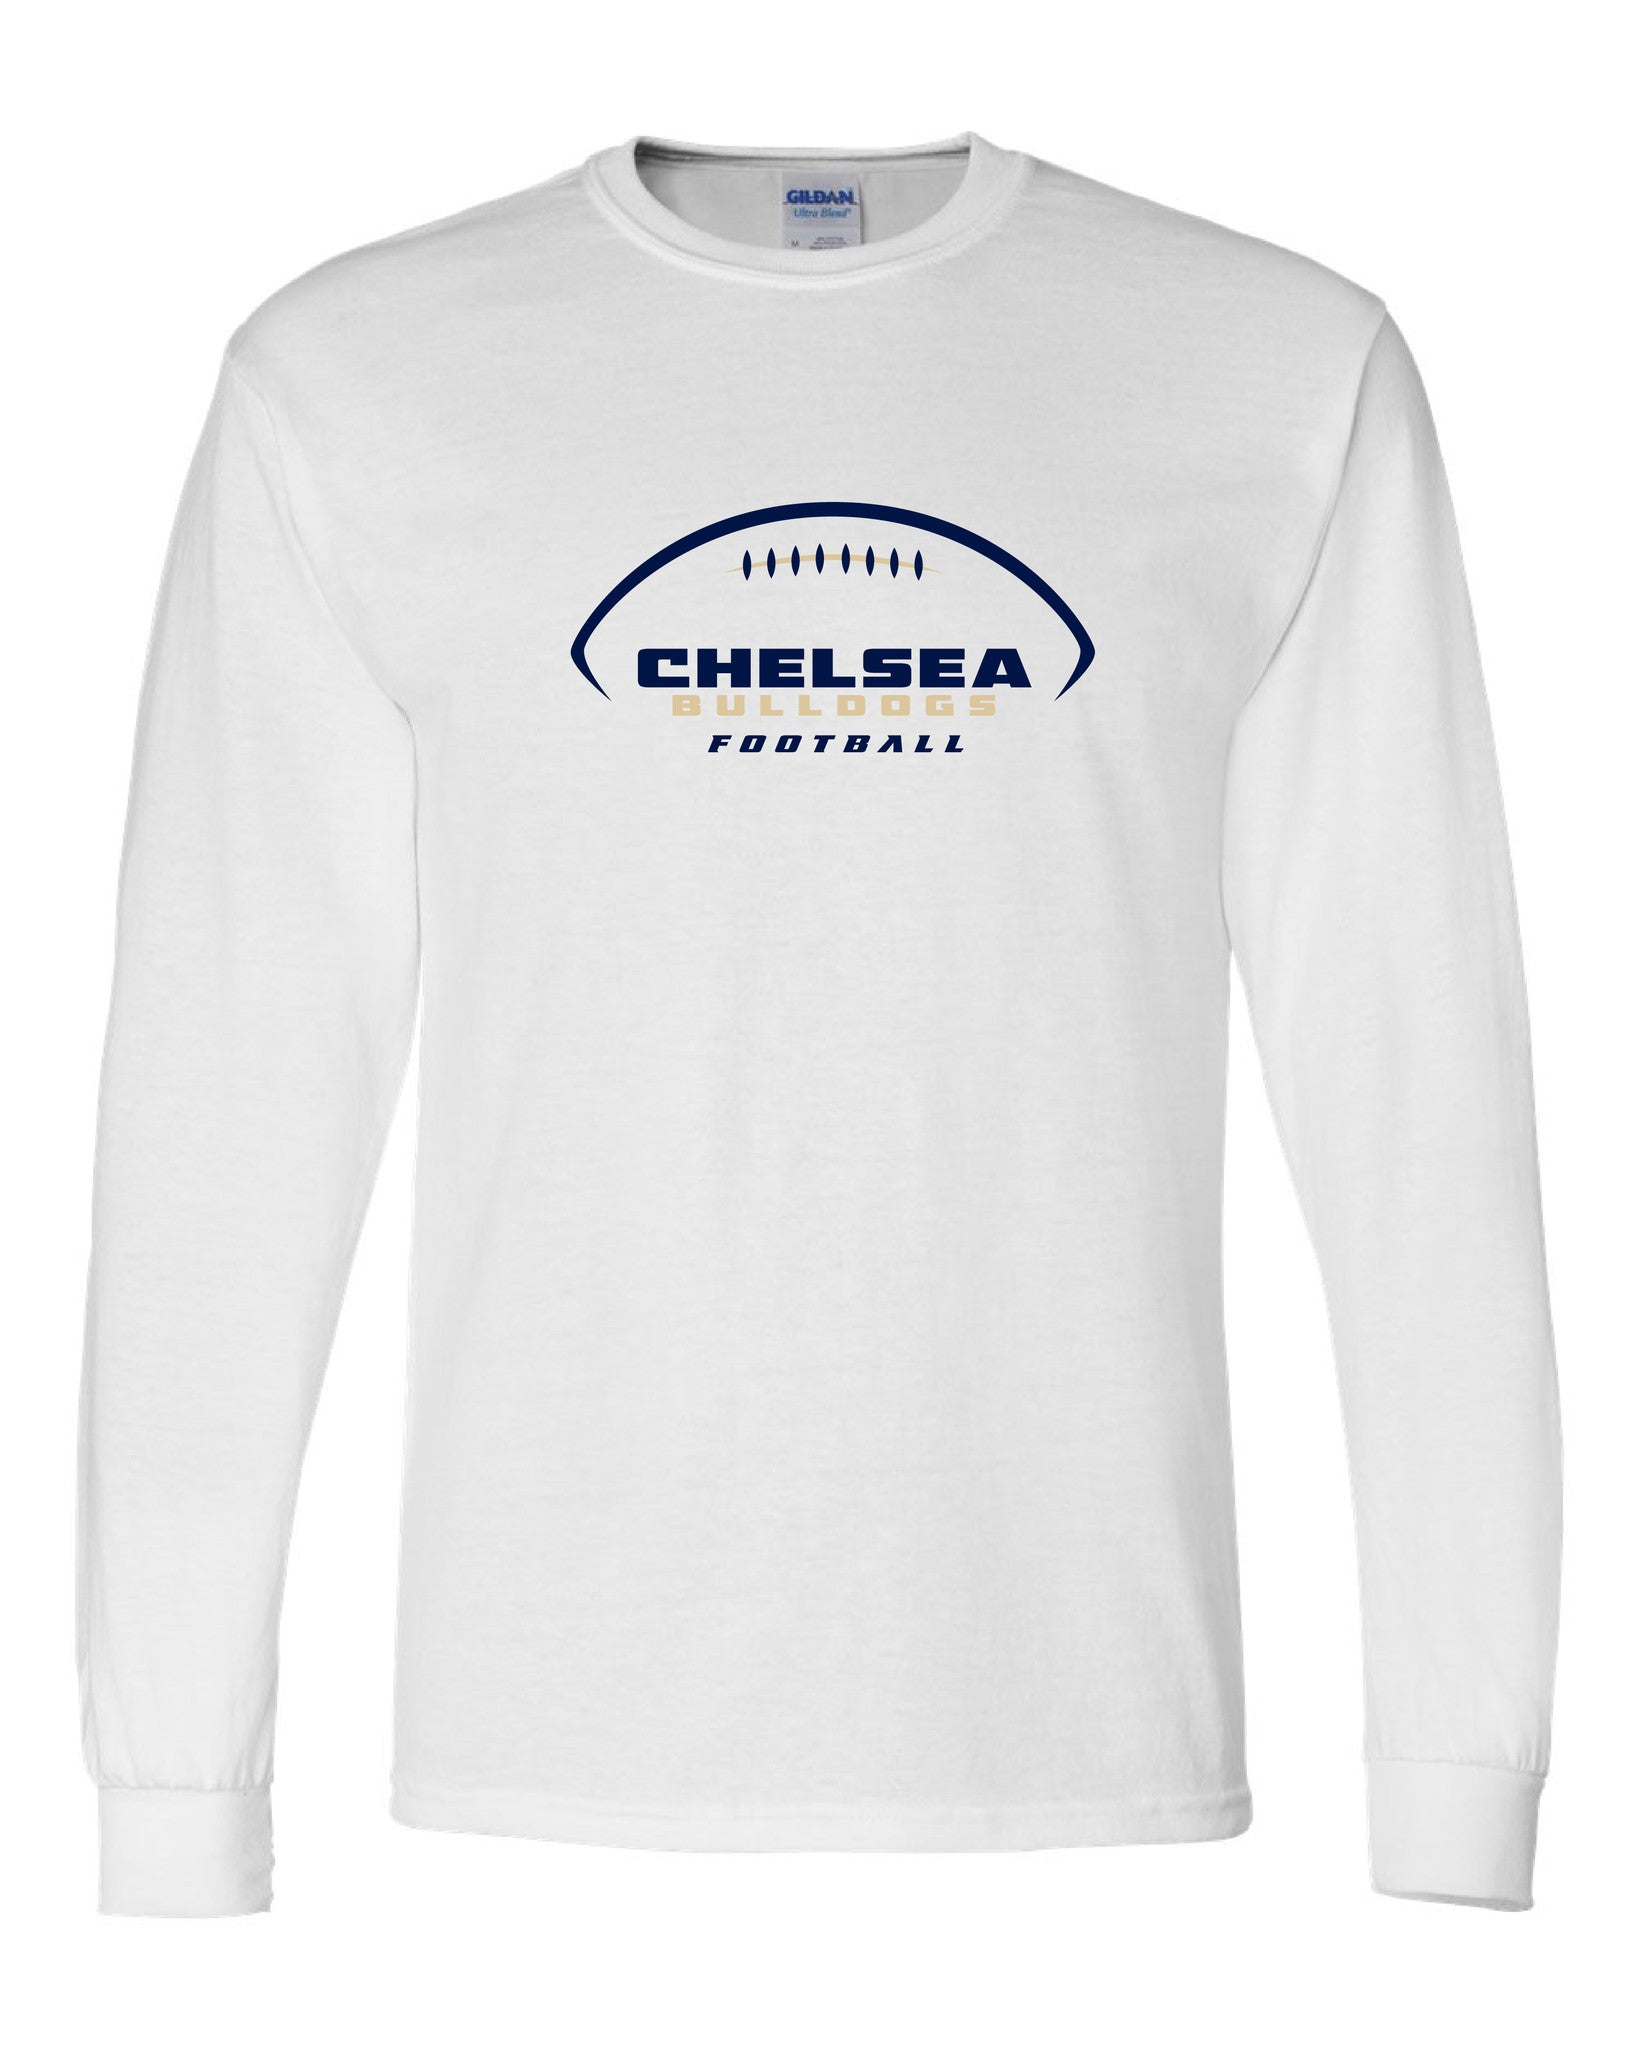 Youth Chelsea Football Long-Sleeve Shirt - D009